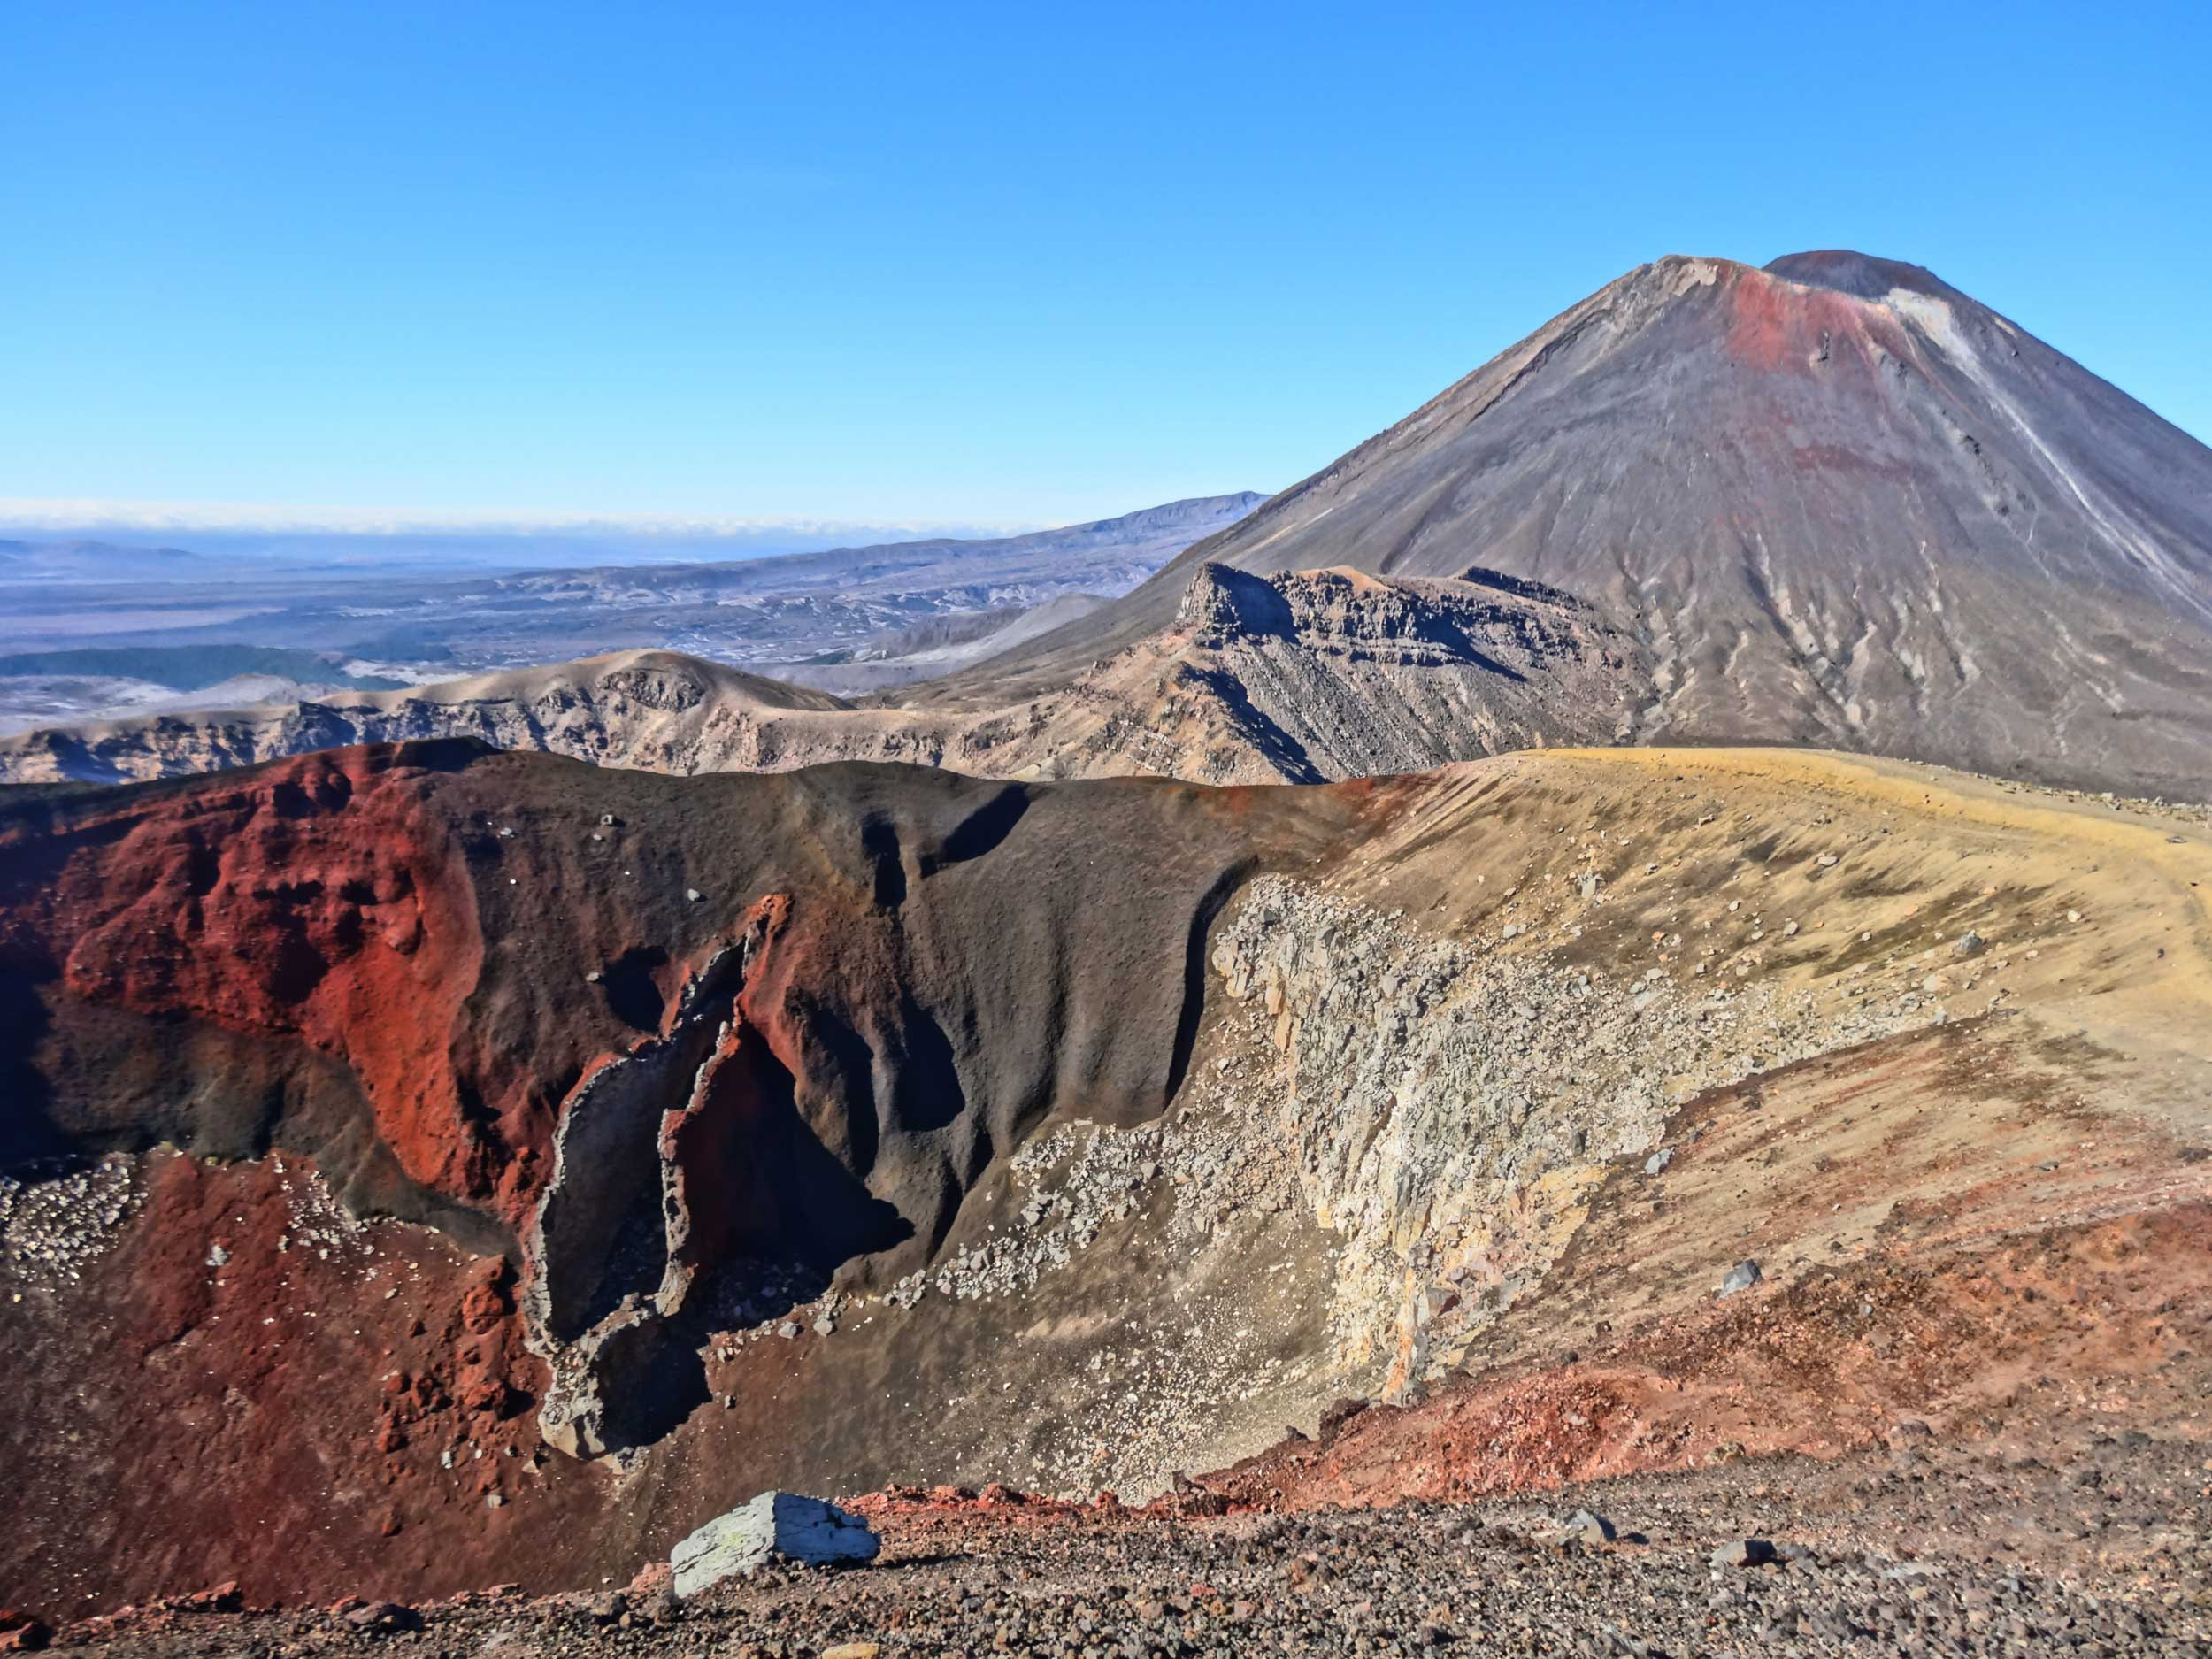 A deeply scarred volcanic crater with varying shades of red, brown and black magma with another conical volcano behind it at Tongariro, New Zealand